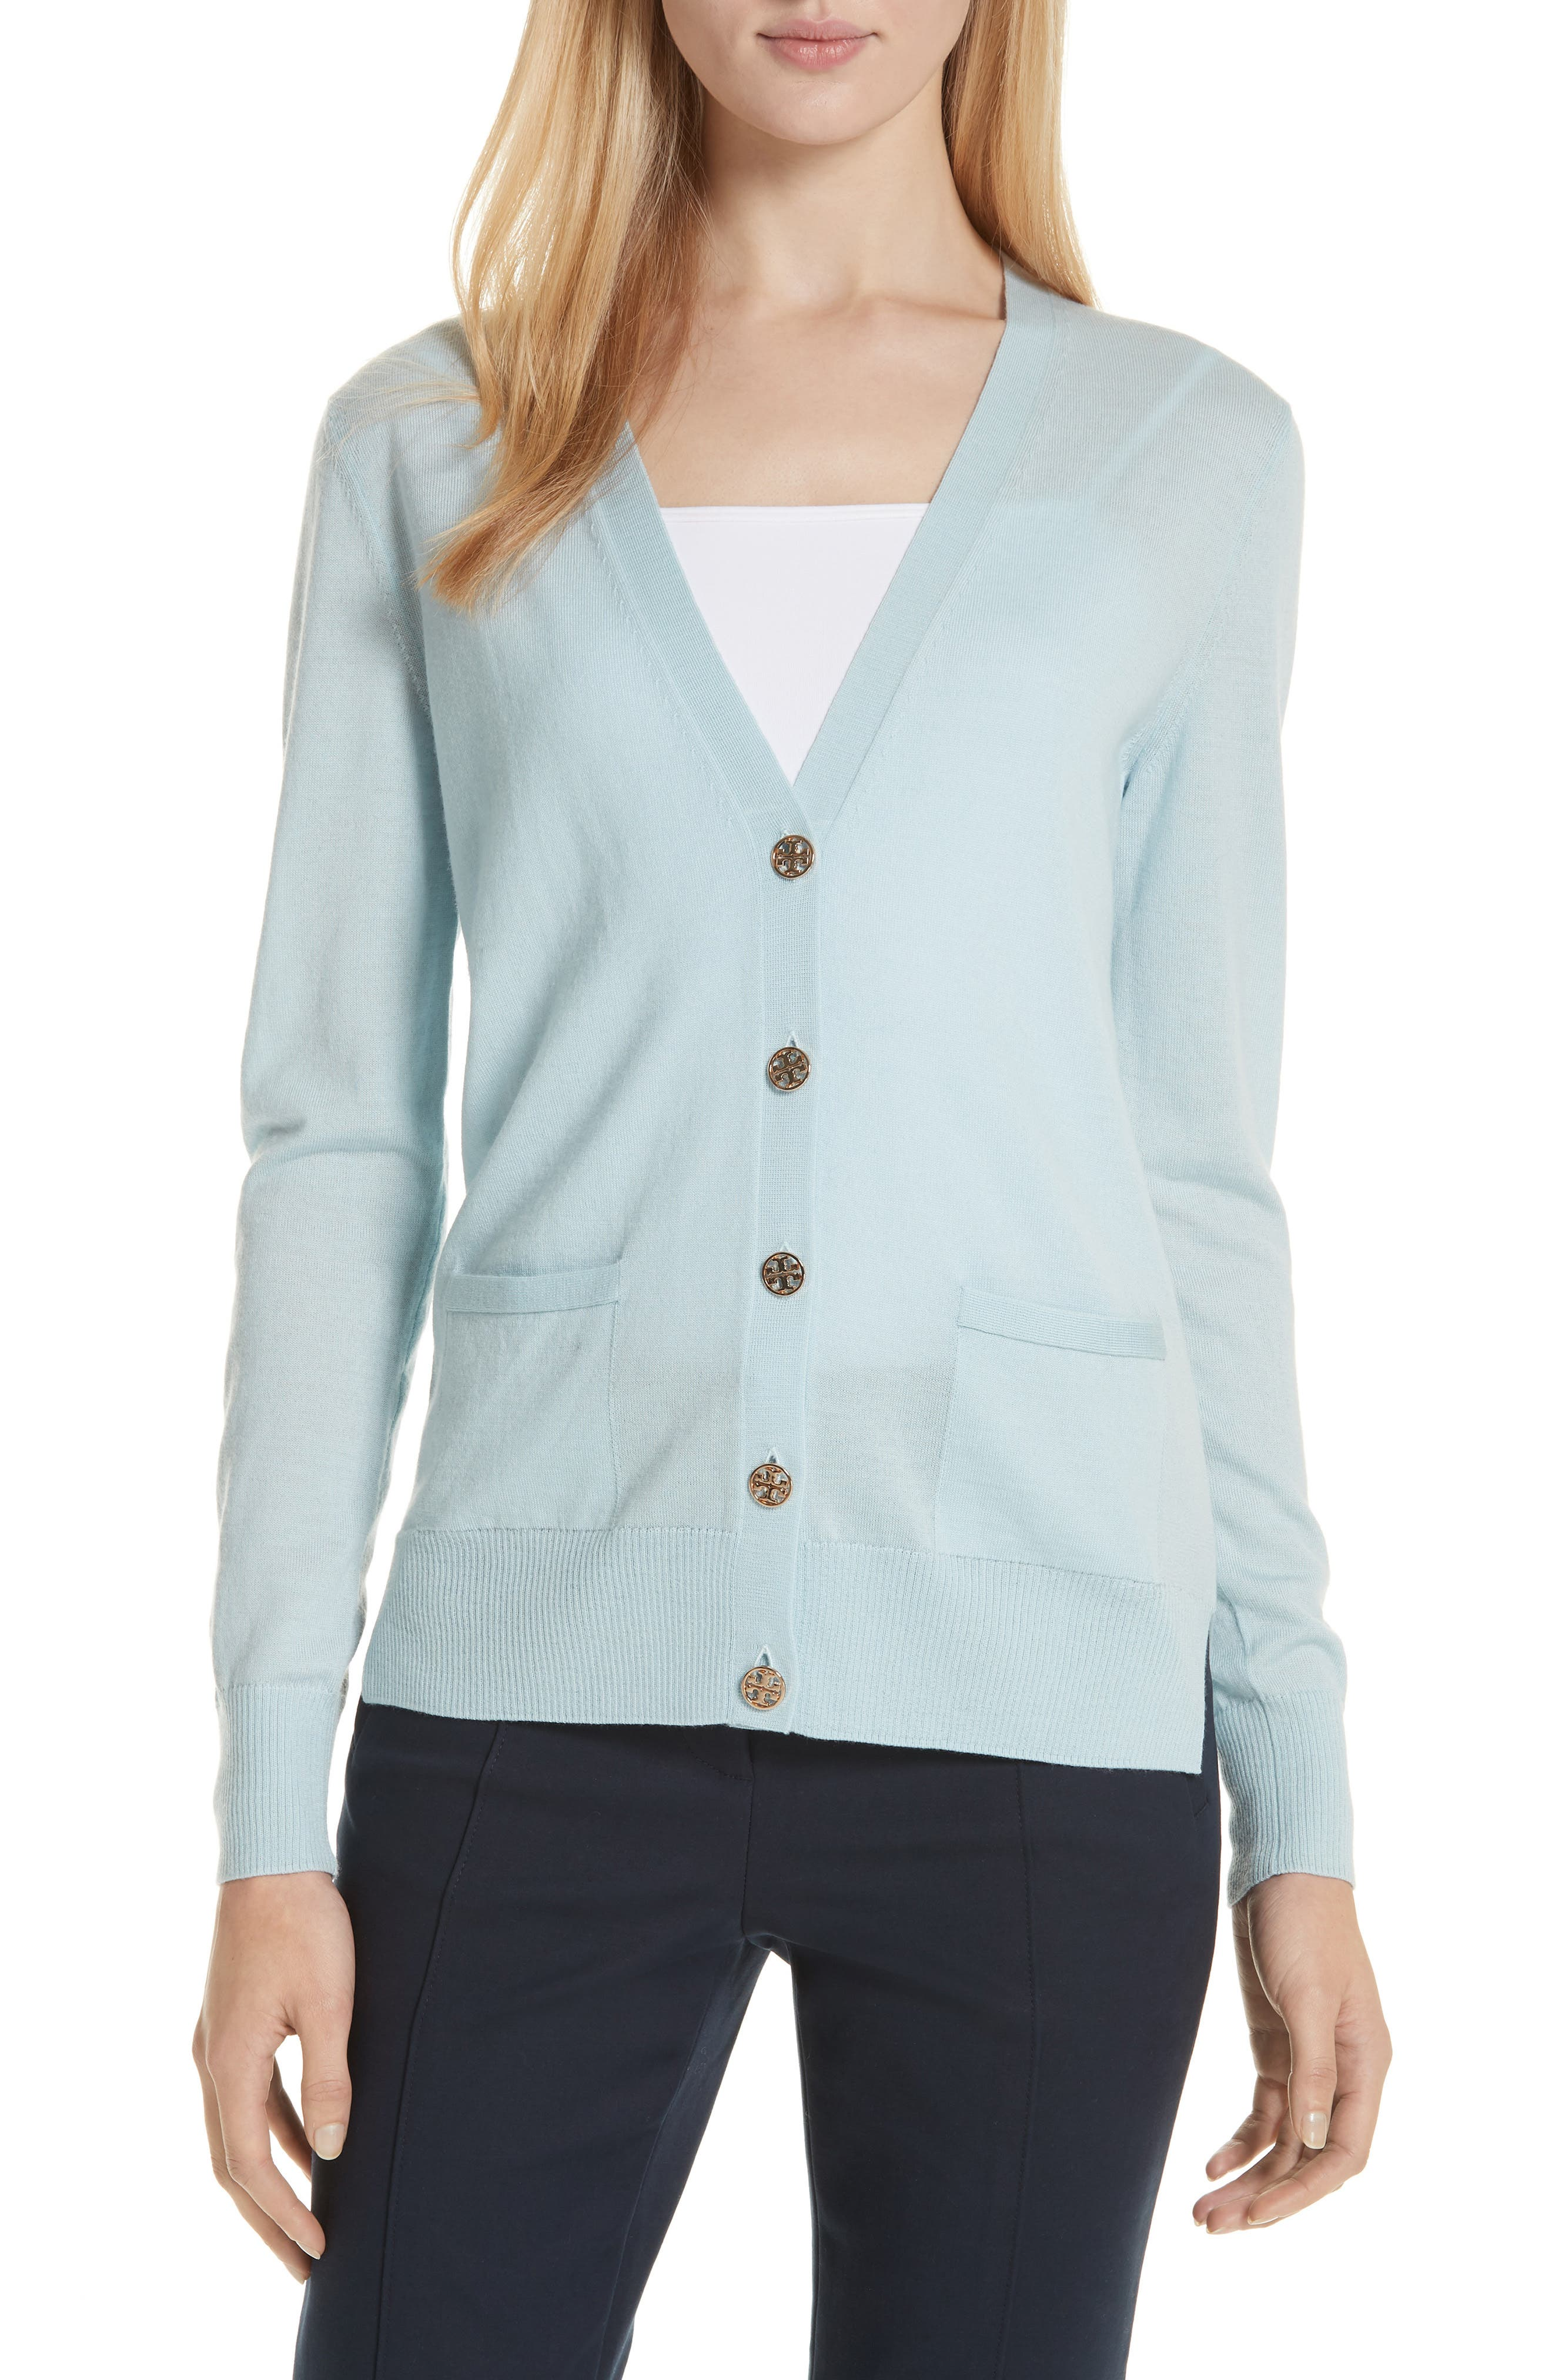 Madeline Merino Wool Cardigan,                         Main,                         color, 414